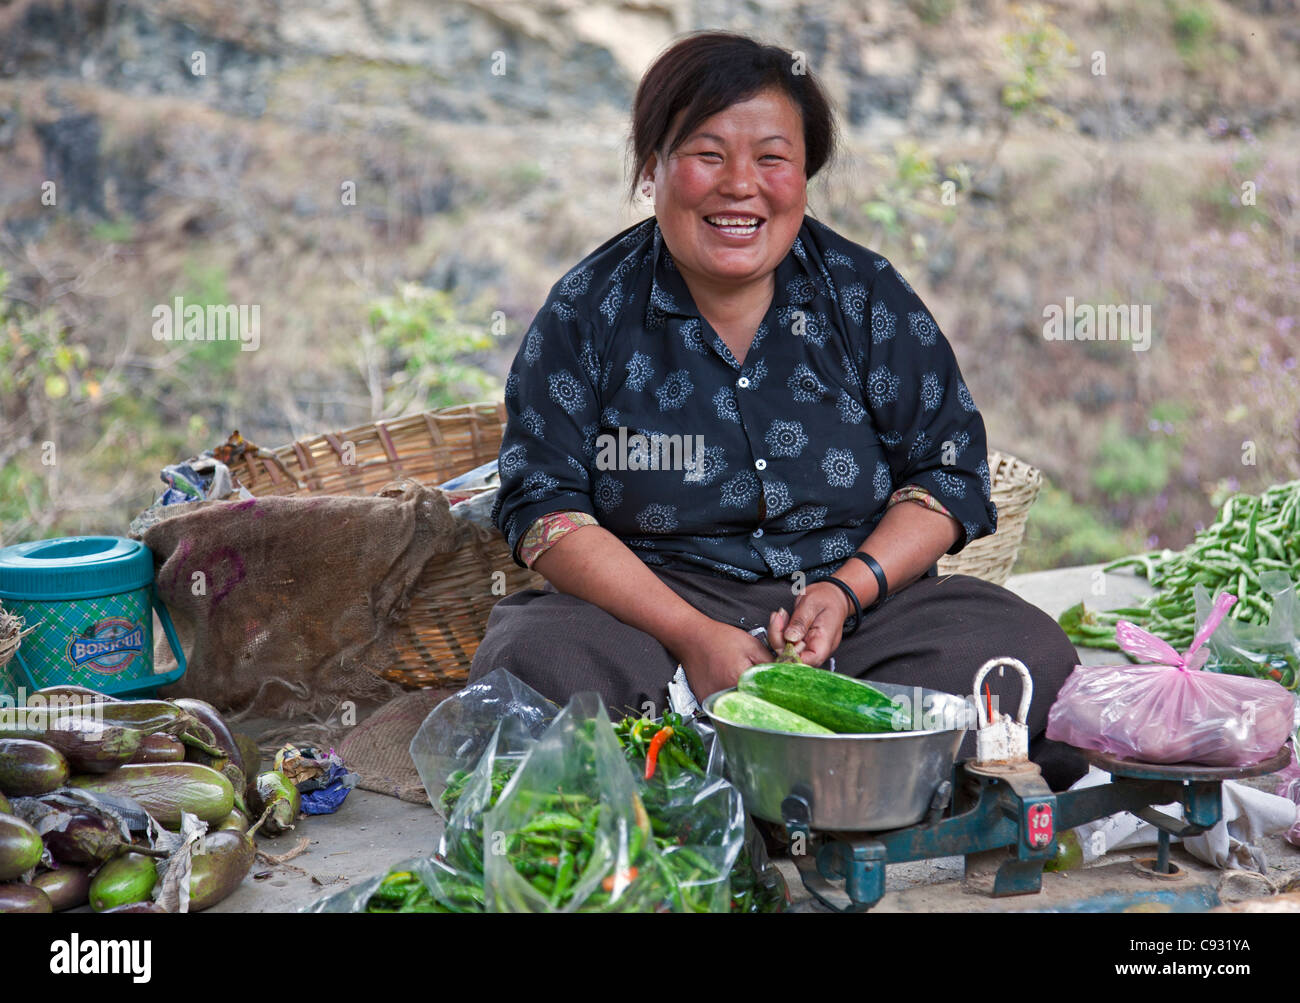 A woman sells vegetables at a roadside stall outside Mongar in East Bhutan. - Stock Image